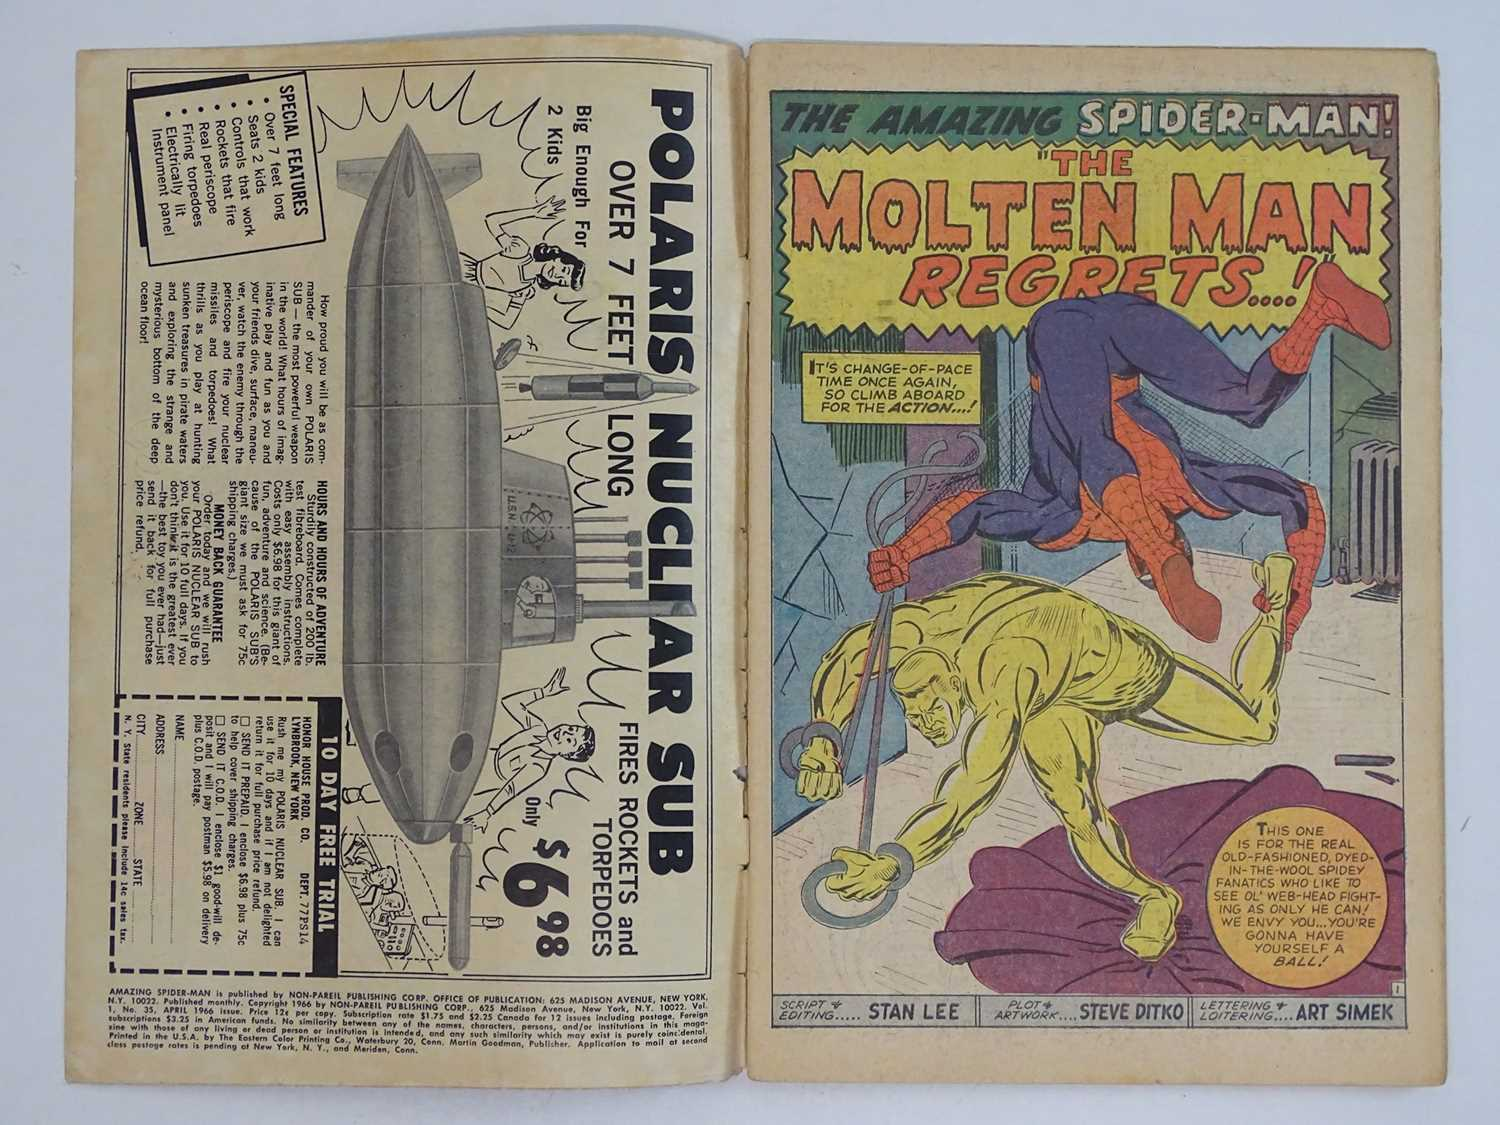 AMAZING SPIDER-MAN #35 - (1966 - MARVEL - UK Price Variant) - Second appearance of the Molten Man. - Image 3 of 9